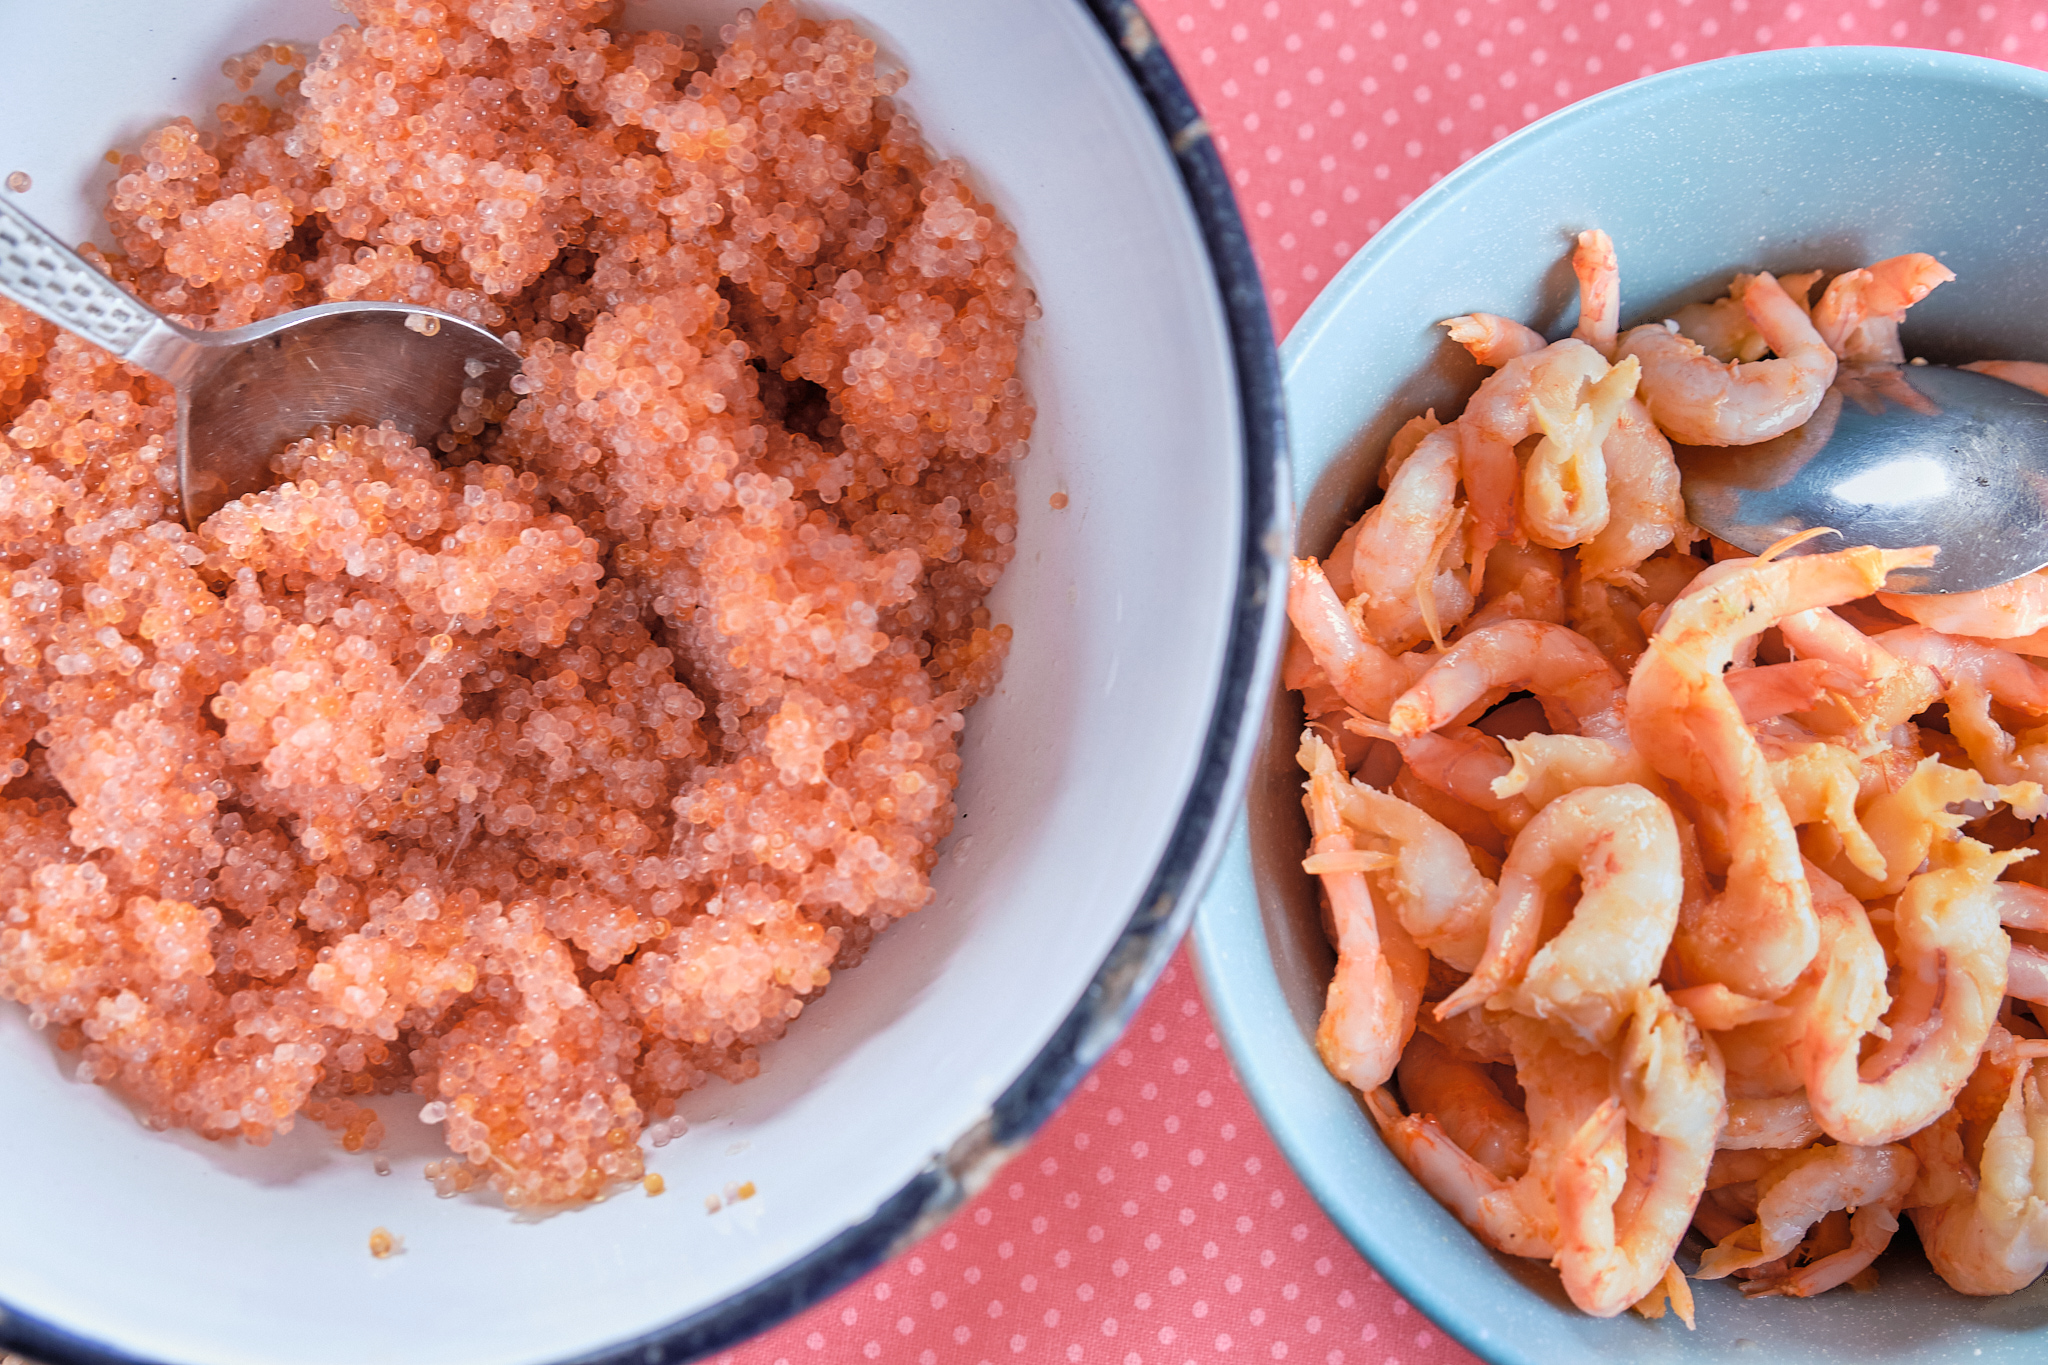 lumpfish roe and prawns for lunch at sassannguit near Sisimiut - Greenland